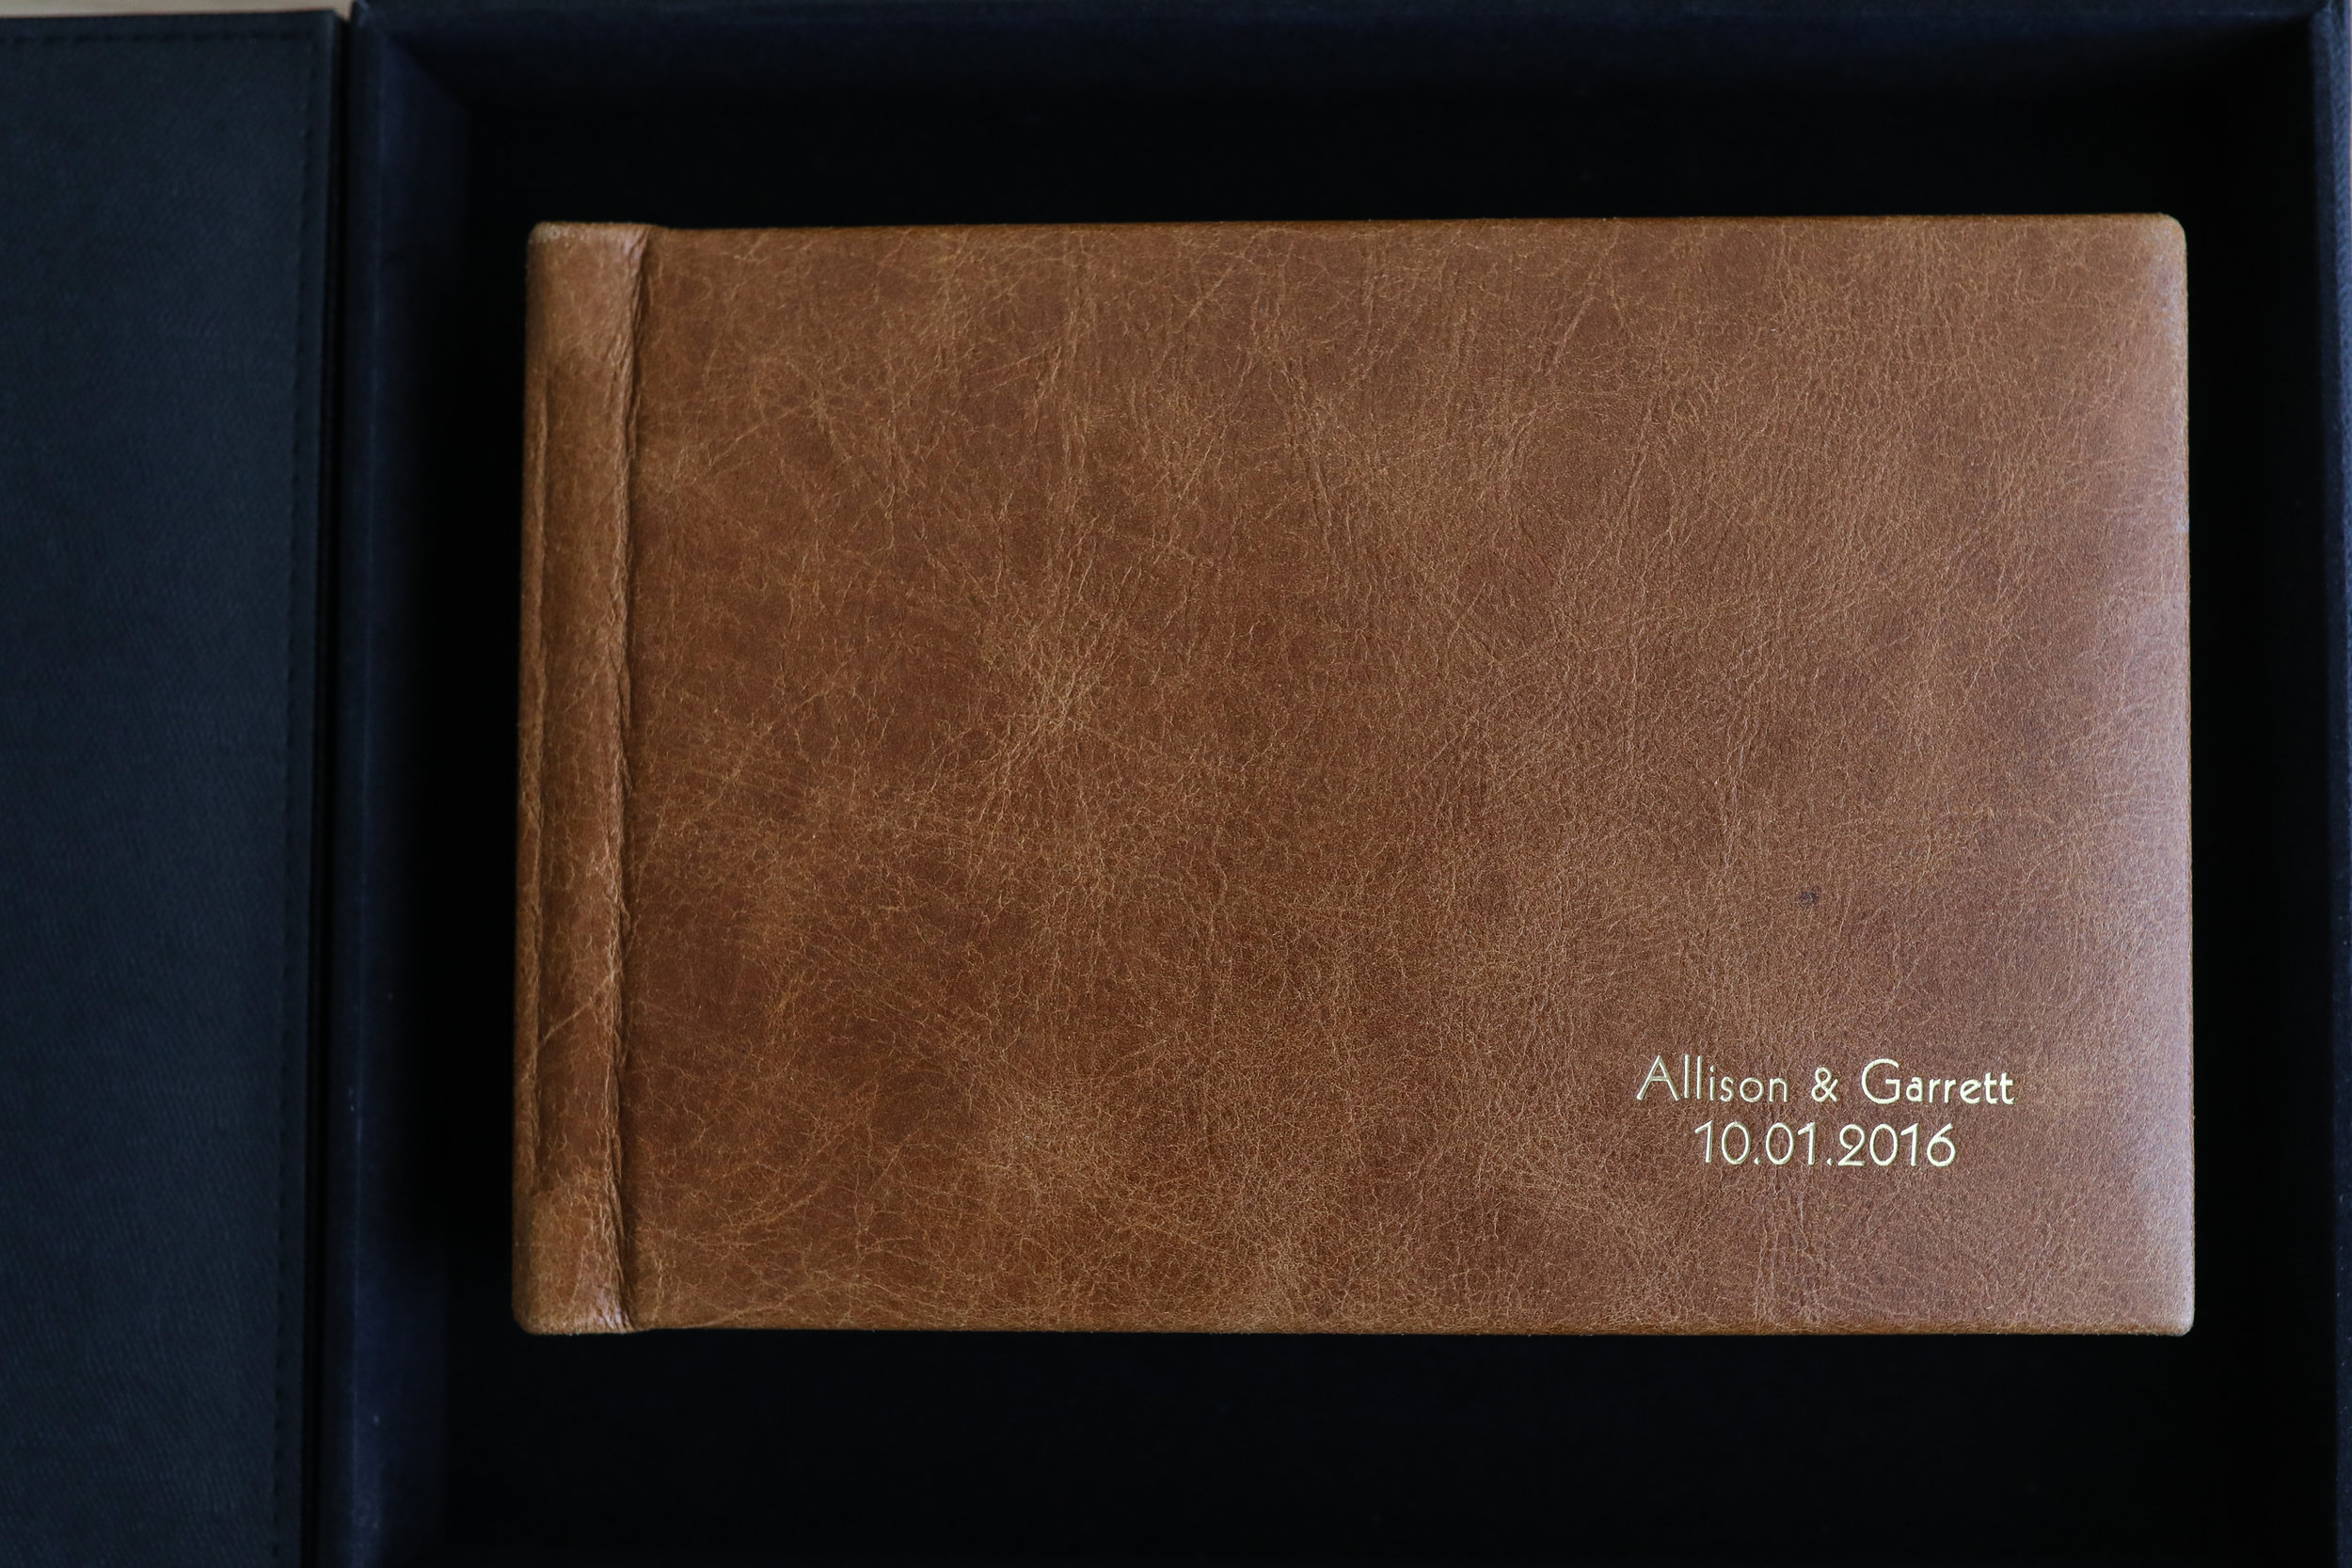 Leather Cover in Gramercy English Brown with Gold Imprint